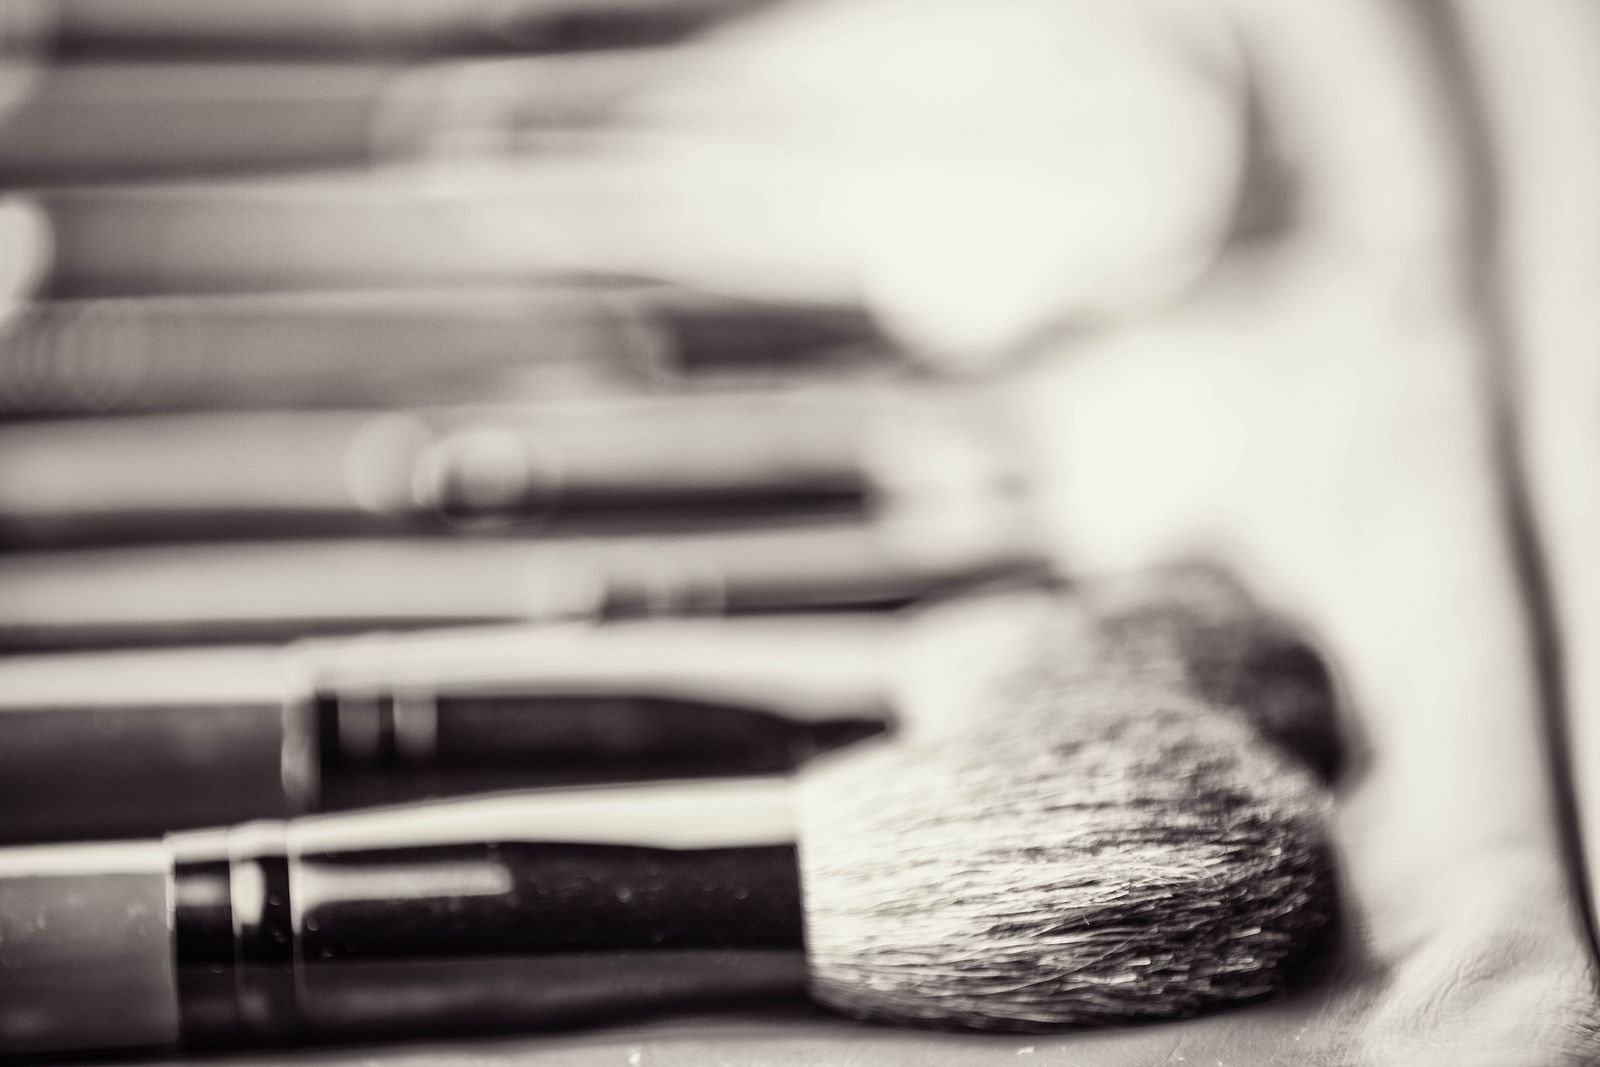 Day 207 Makeup Brushes How to clean makeup brushes